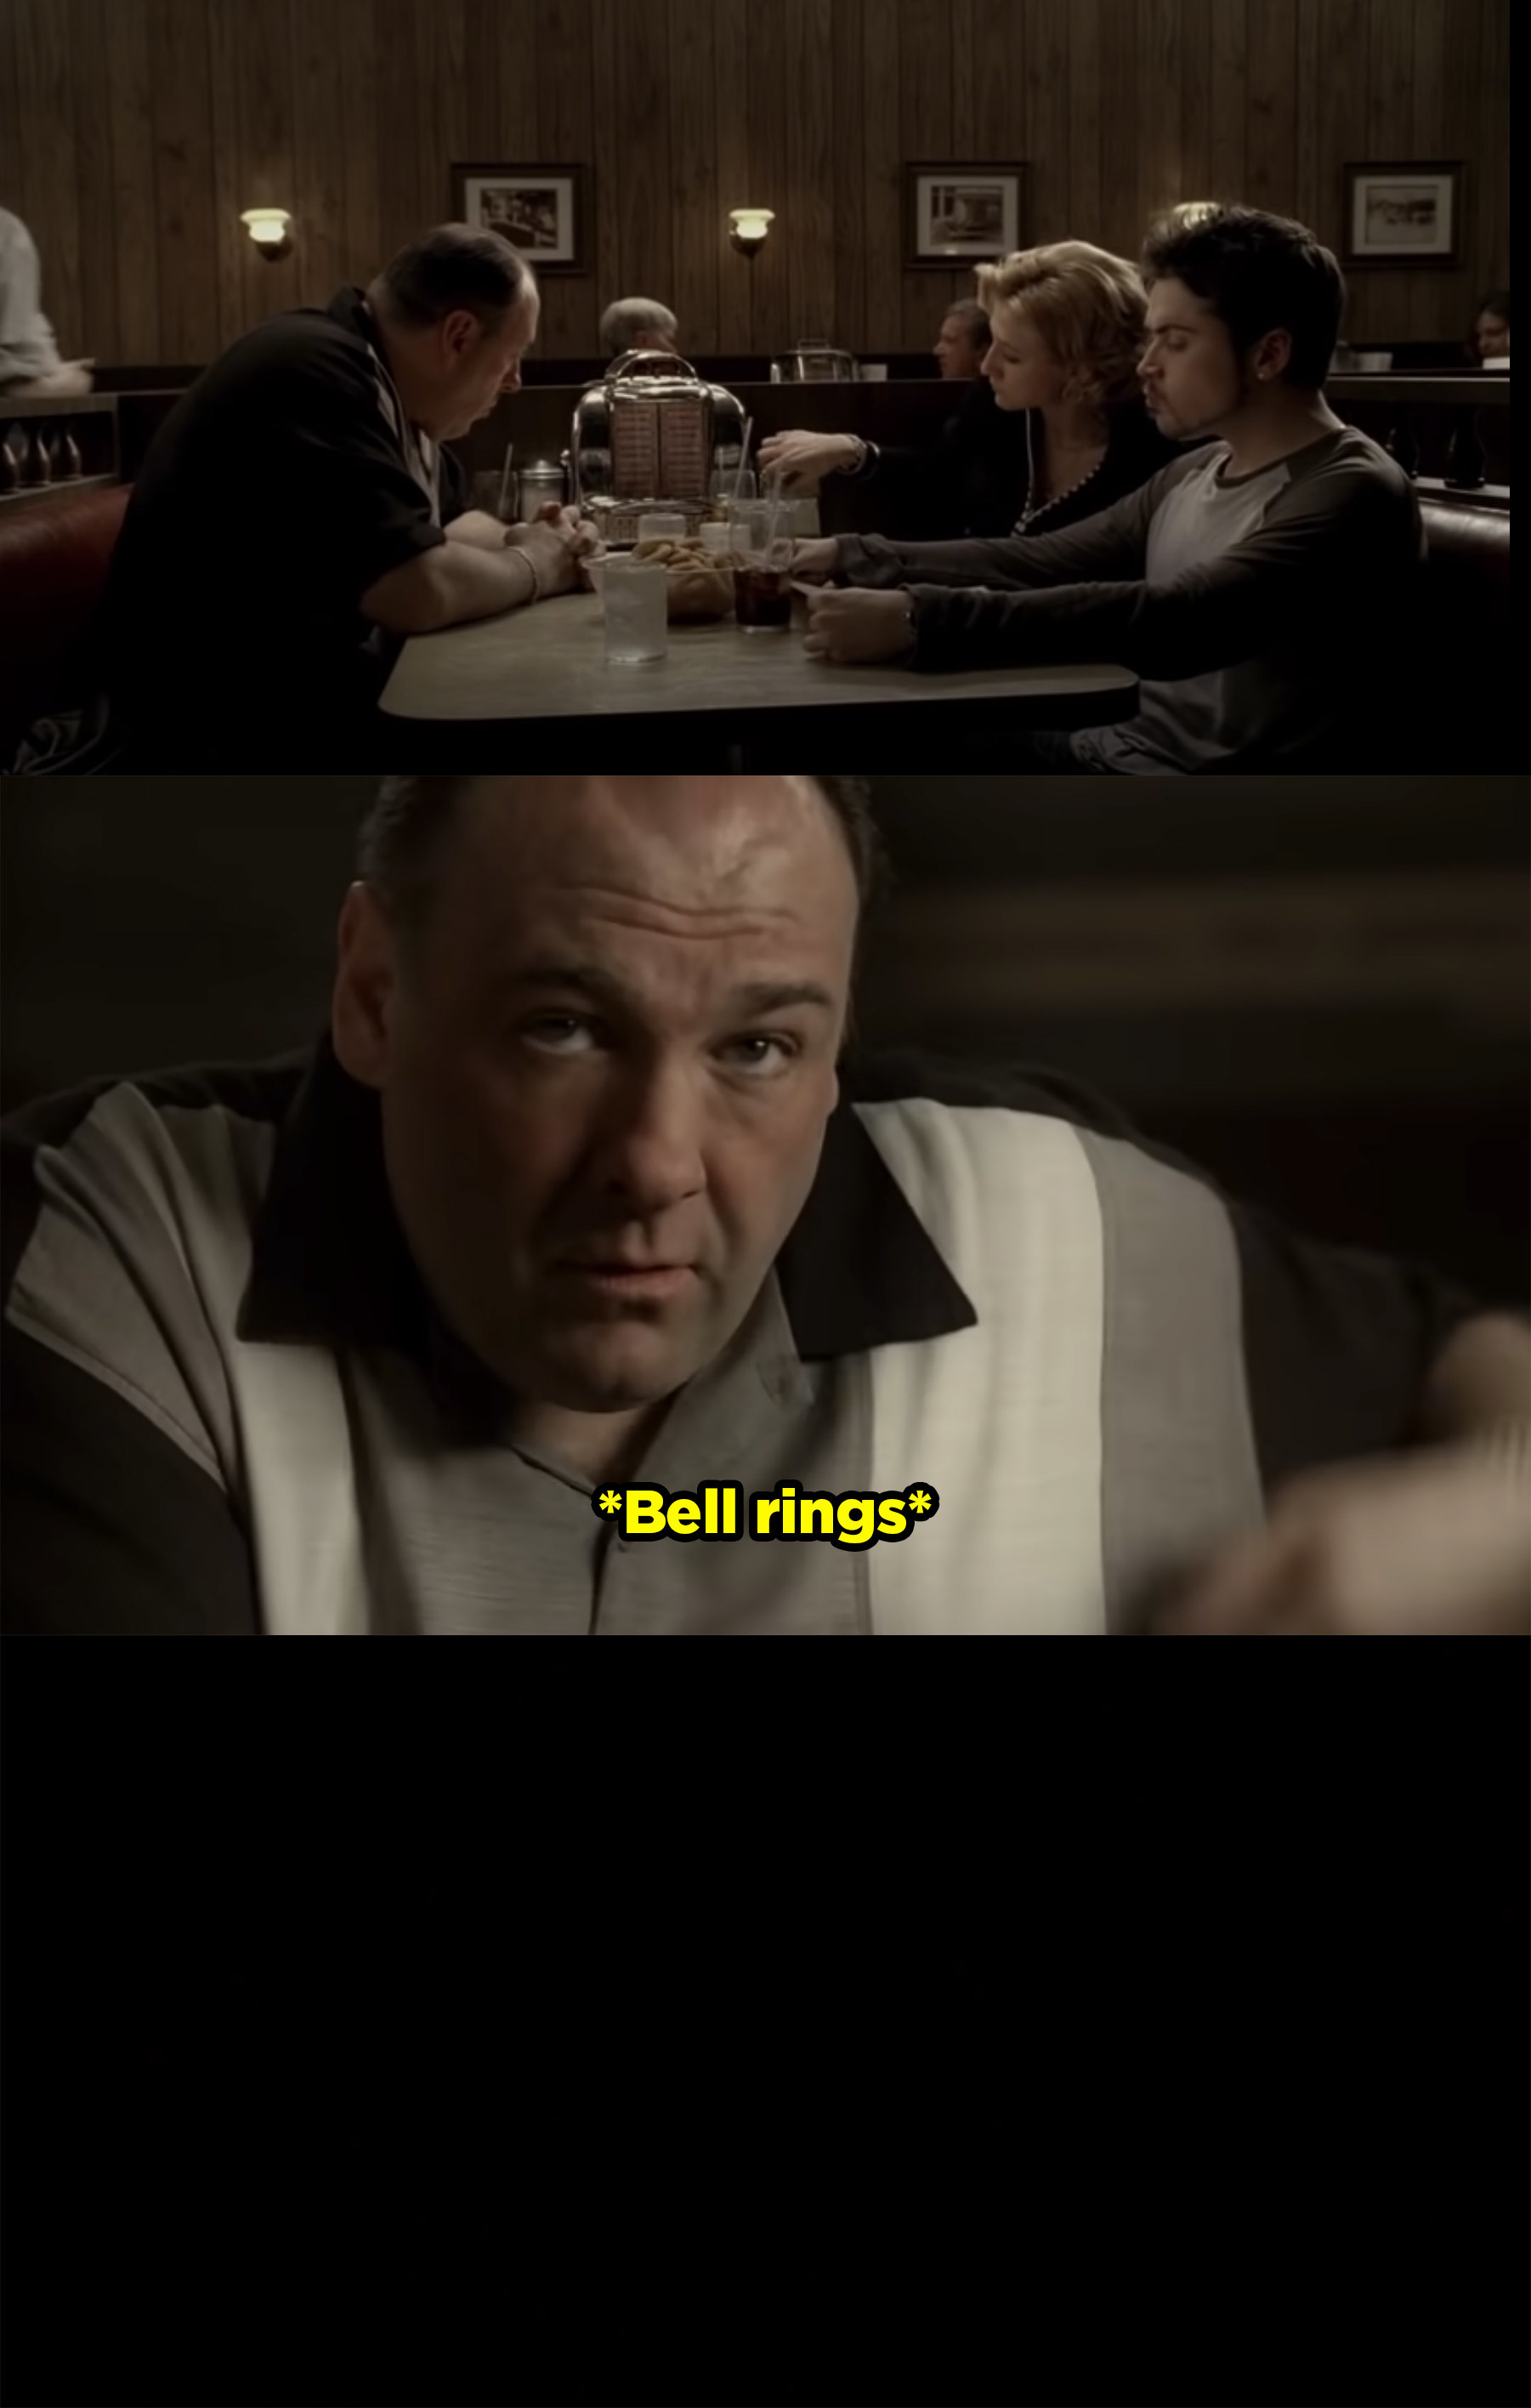 The Sopranos are sitting in a diner and then the door opens and a bell rings. Tony looks up and the screen goes black.